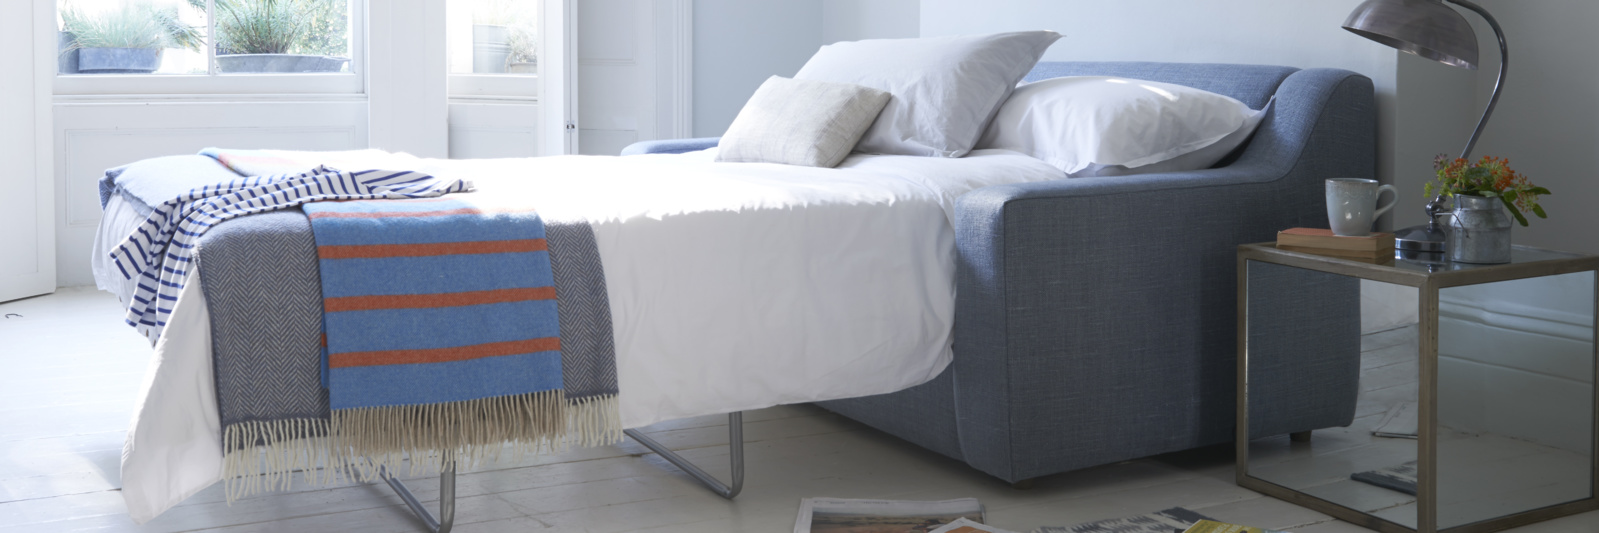 Luxury hand made comfy British cloud soda bed